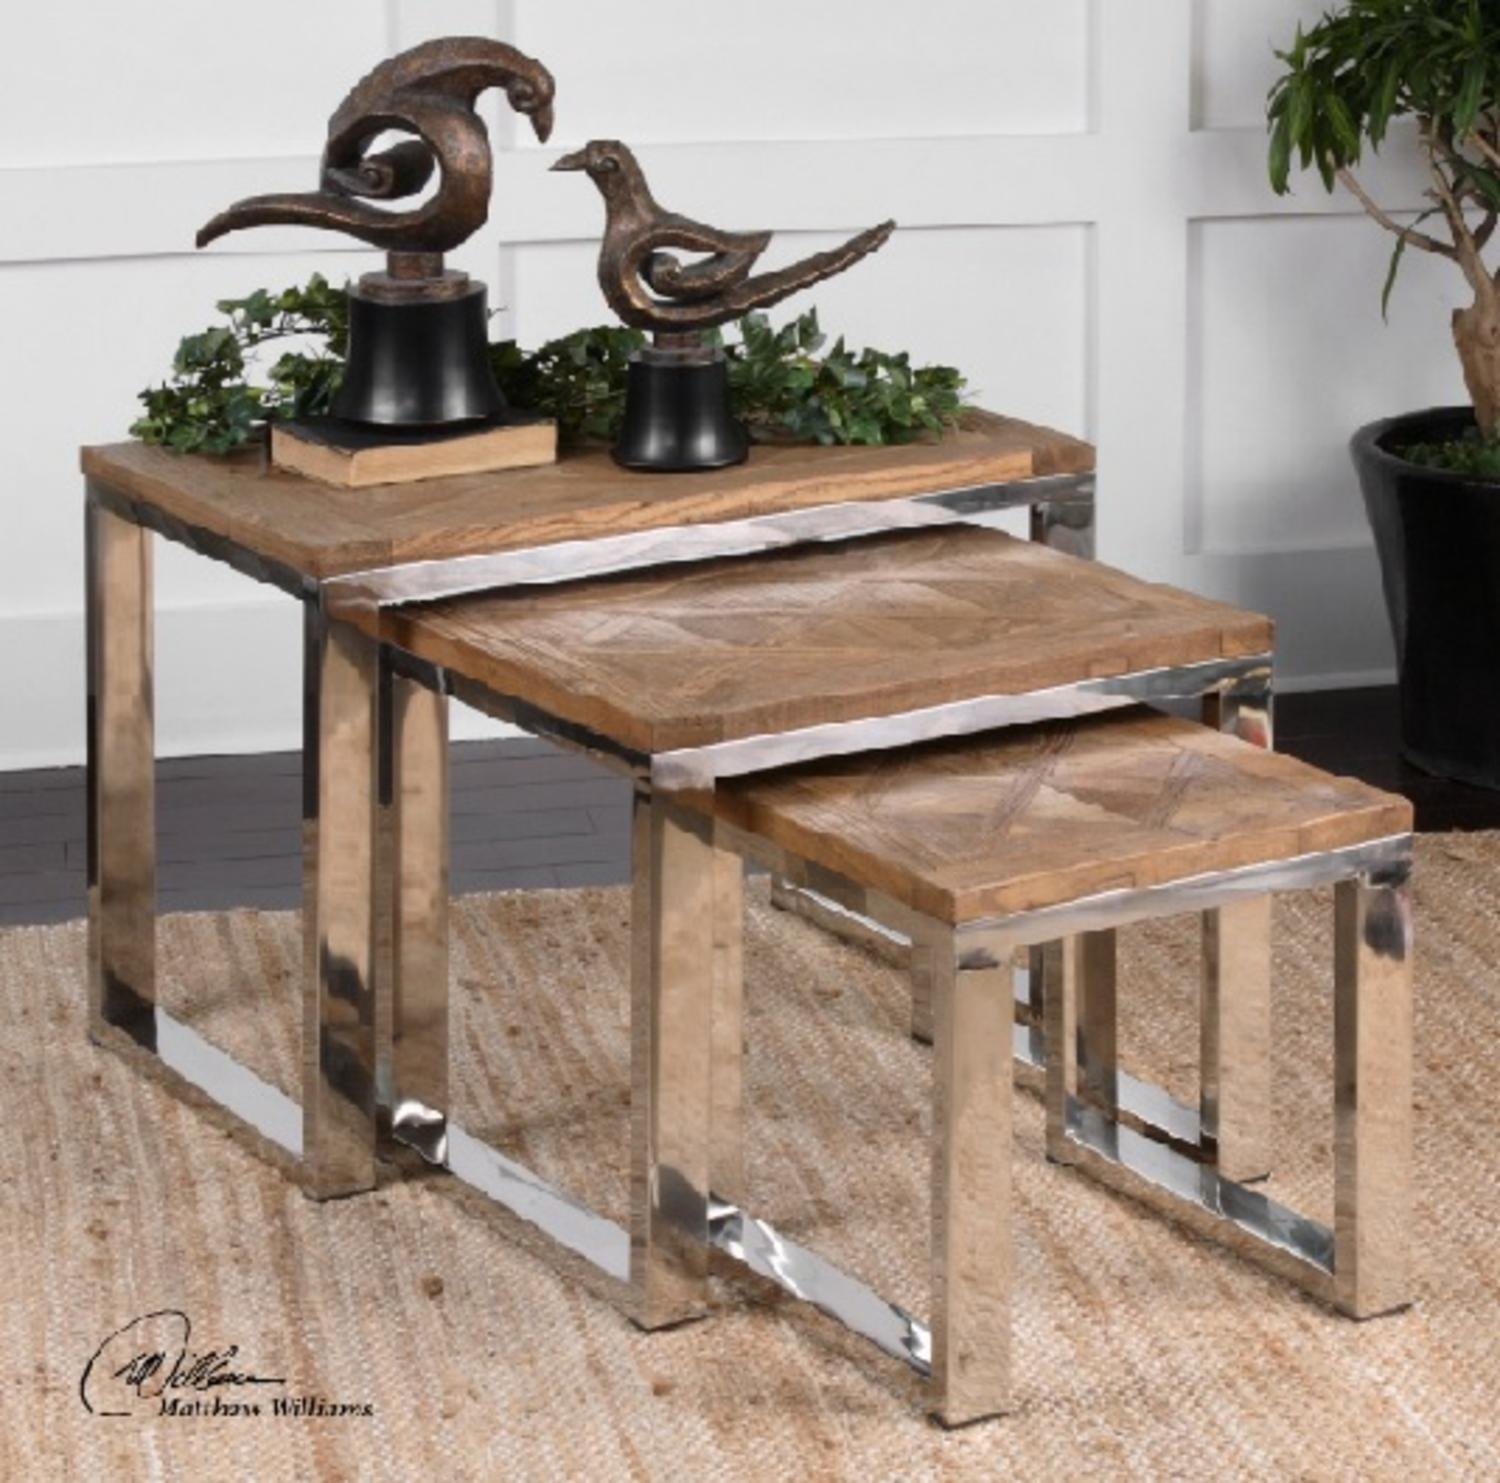 Set of 3 Eco-Friendly Natural Distressed Fir w/ Stainless Steel Decorative Nesting Tables 28''